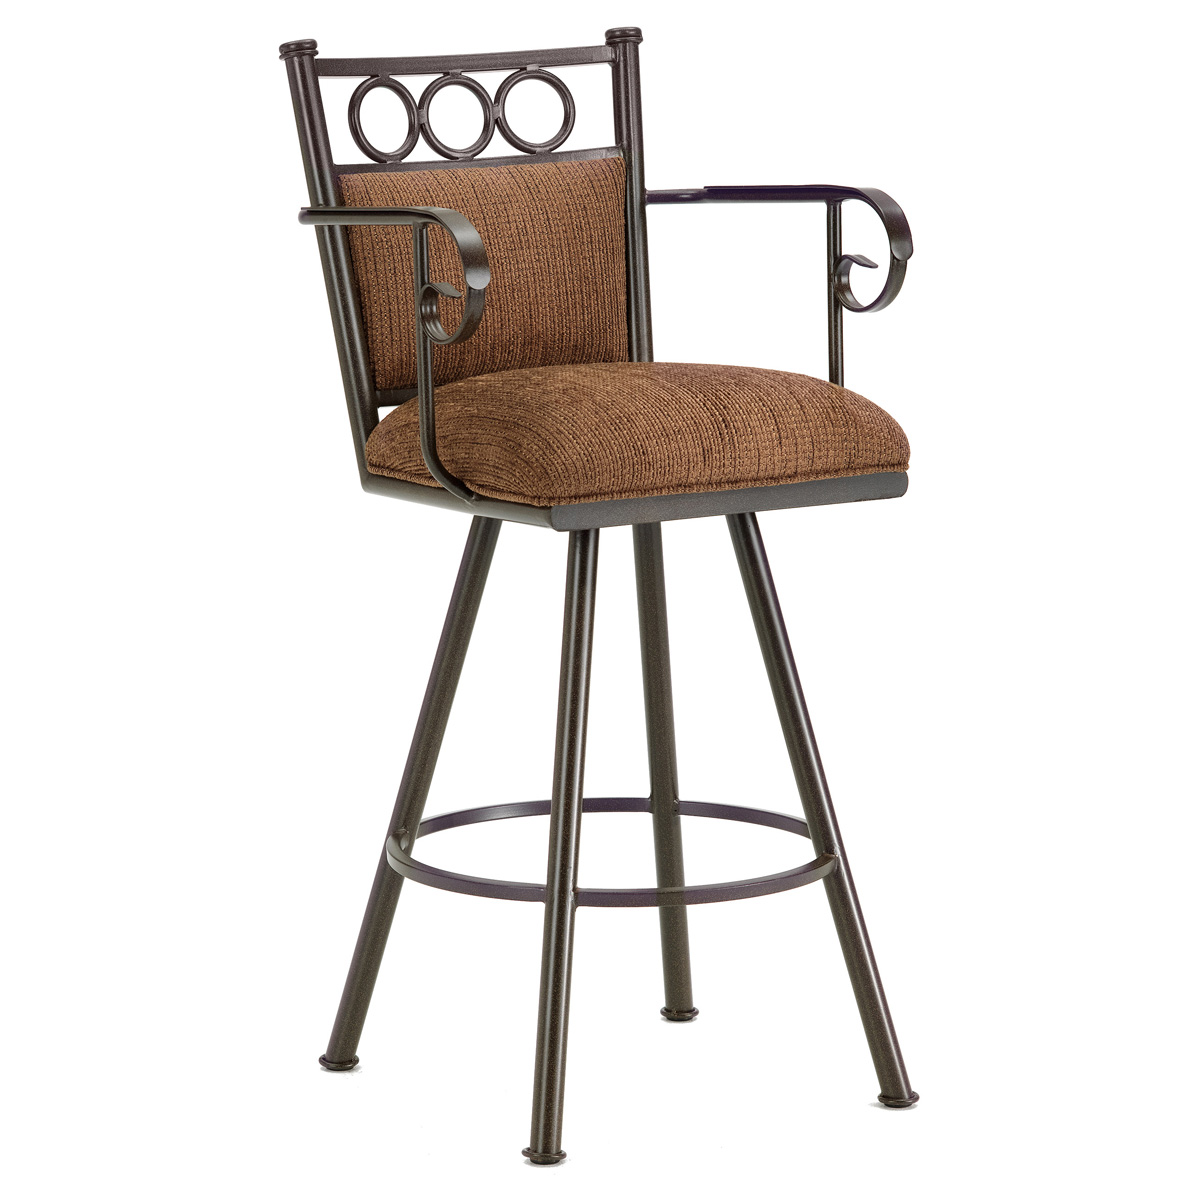 "Waterson 26"" Swivel Counter Stool - Armrests, Padded, Rust, Chenille"